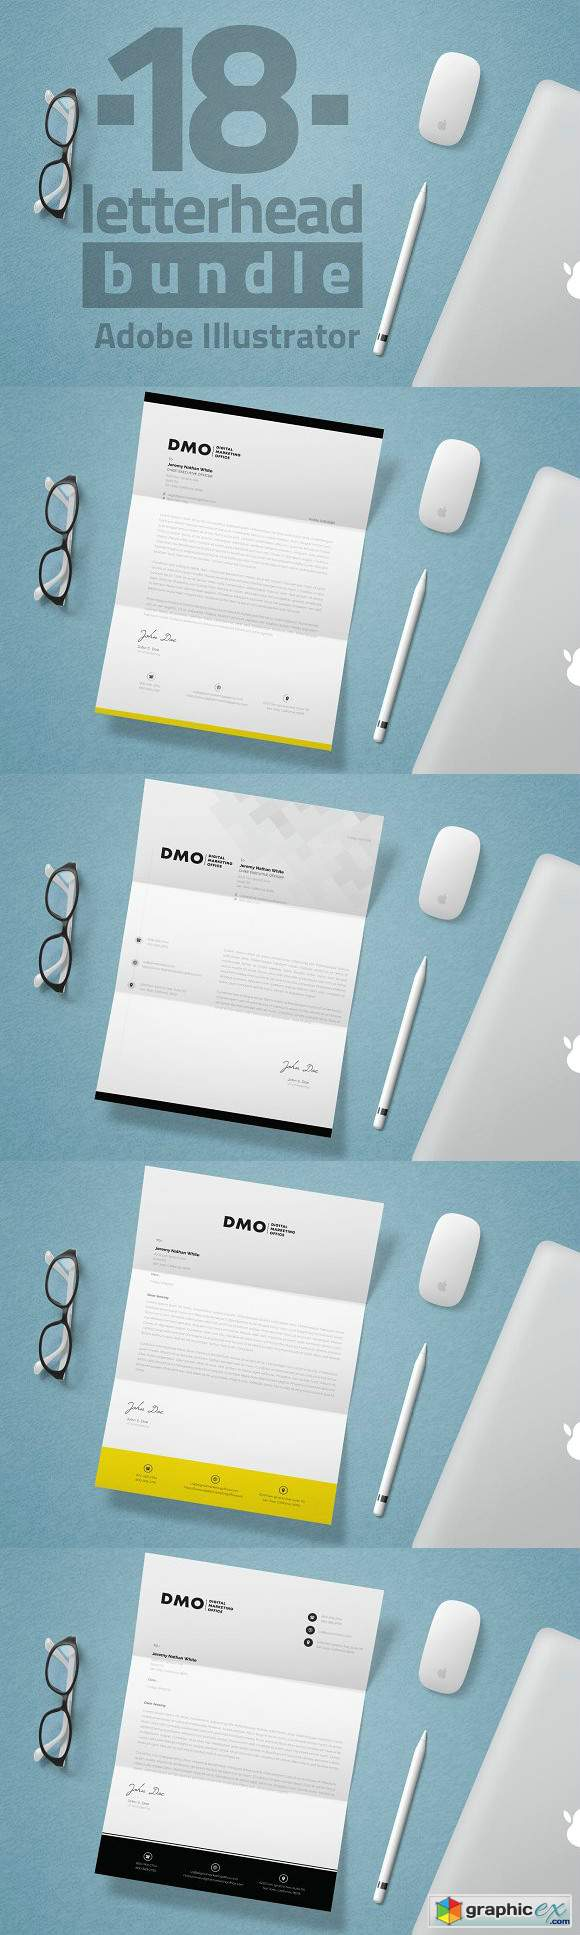 18 Letterhead Bundle